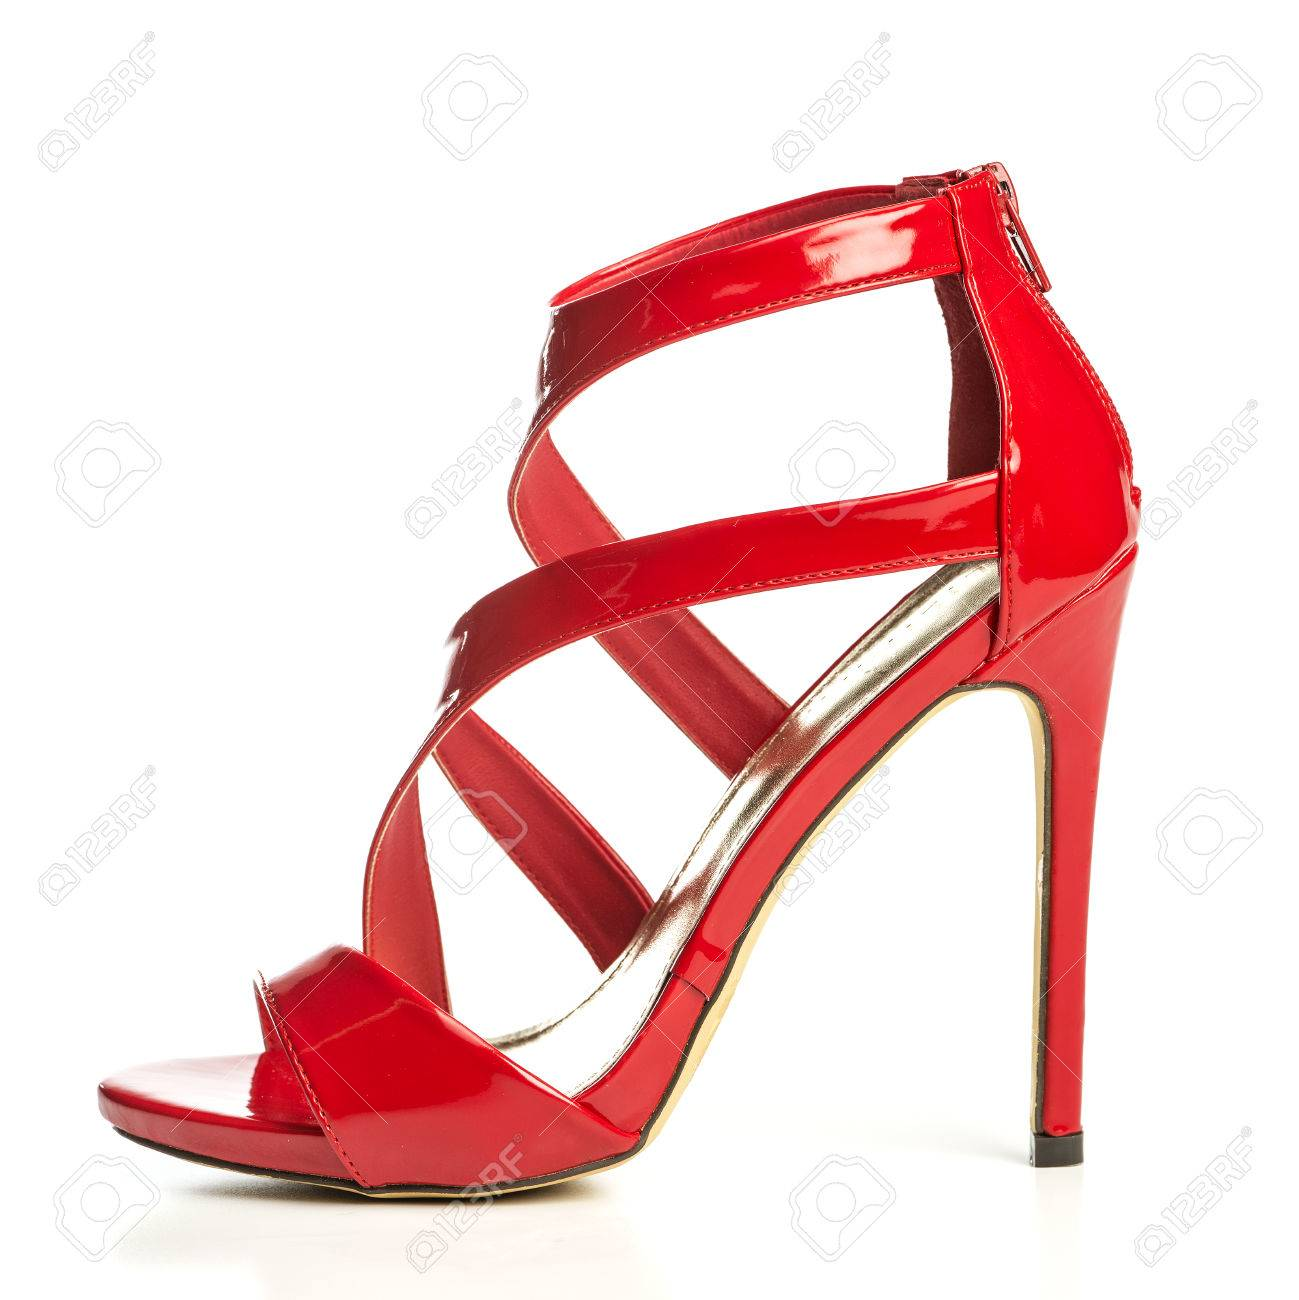 64d614713bb high heels sandals in shiny red patent leather with small platform sole and  ankle strap Stock